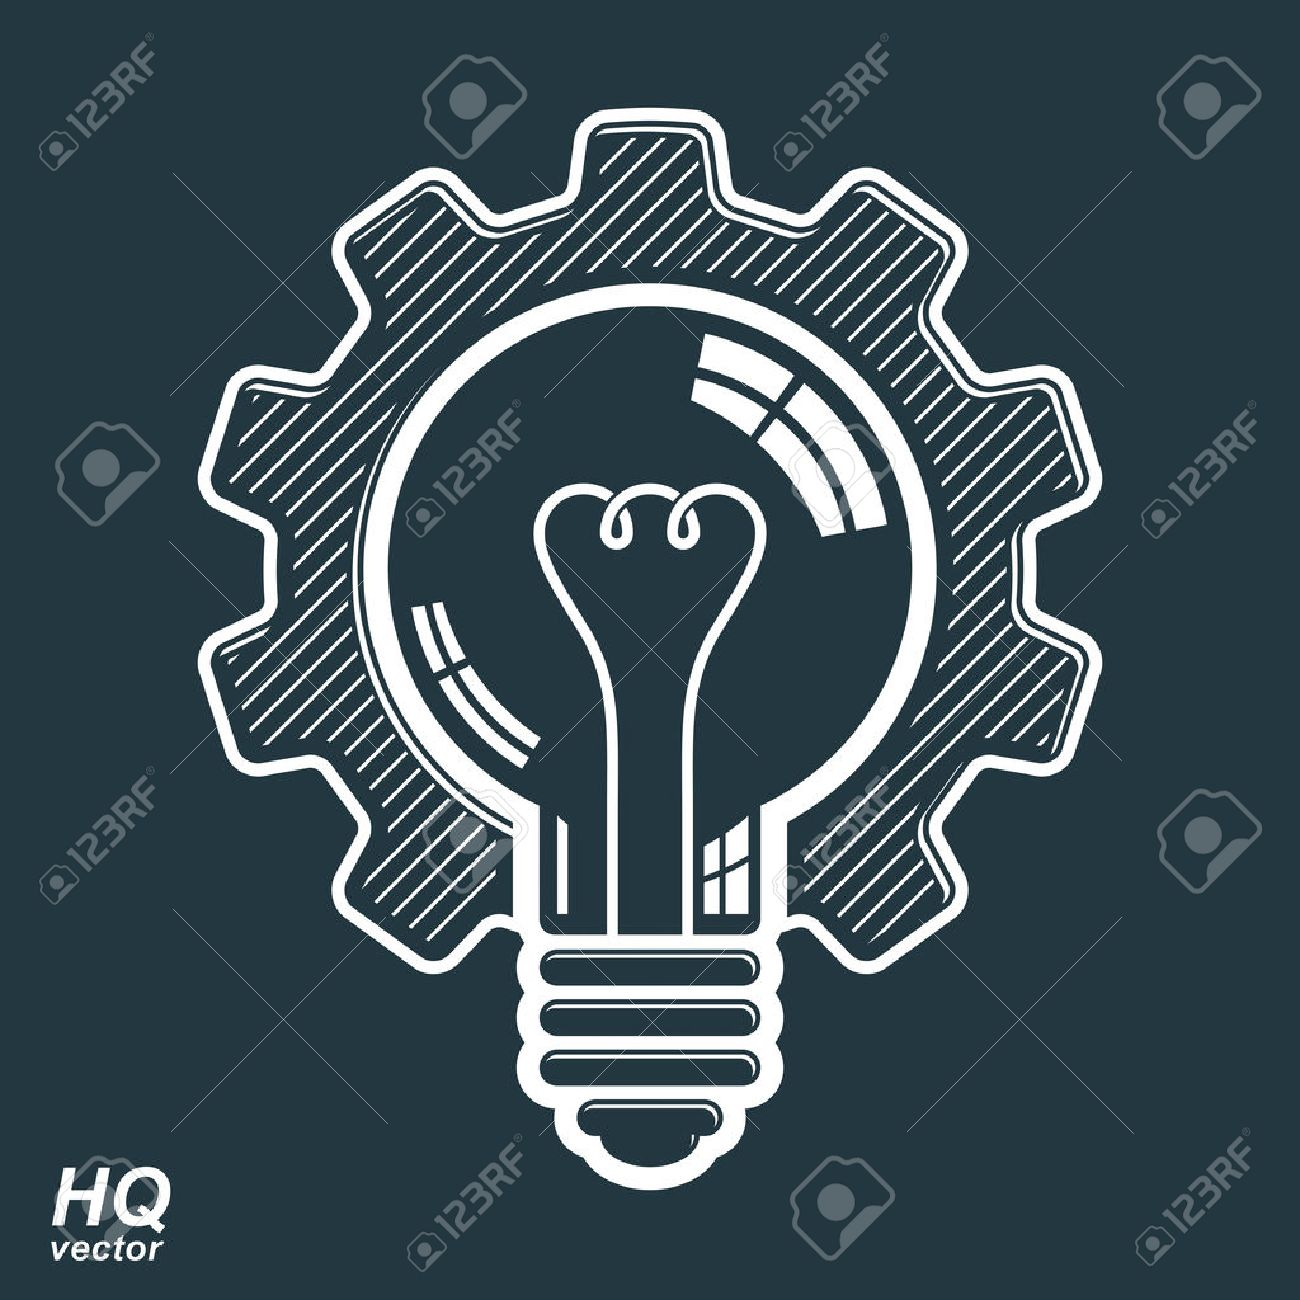 Vector light bulb shape, high quality cog wheel. Technical solution symbol, manufacturing and business idea icon, retro graphic gear. Industry innovation design element. Stock Vector - 36388956